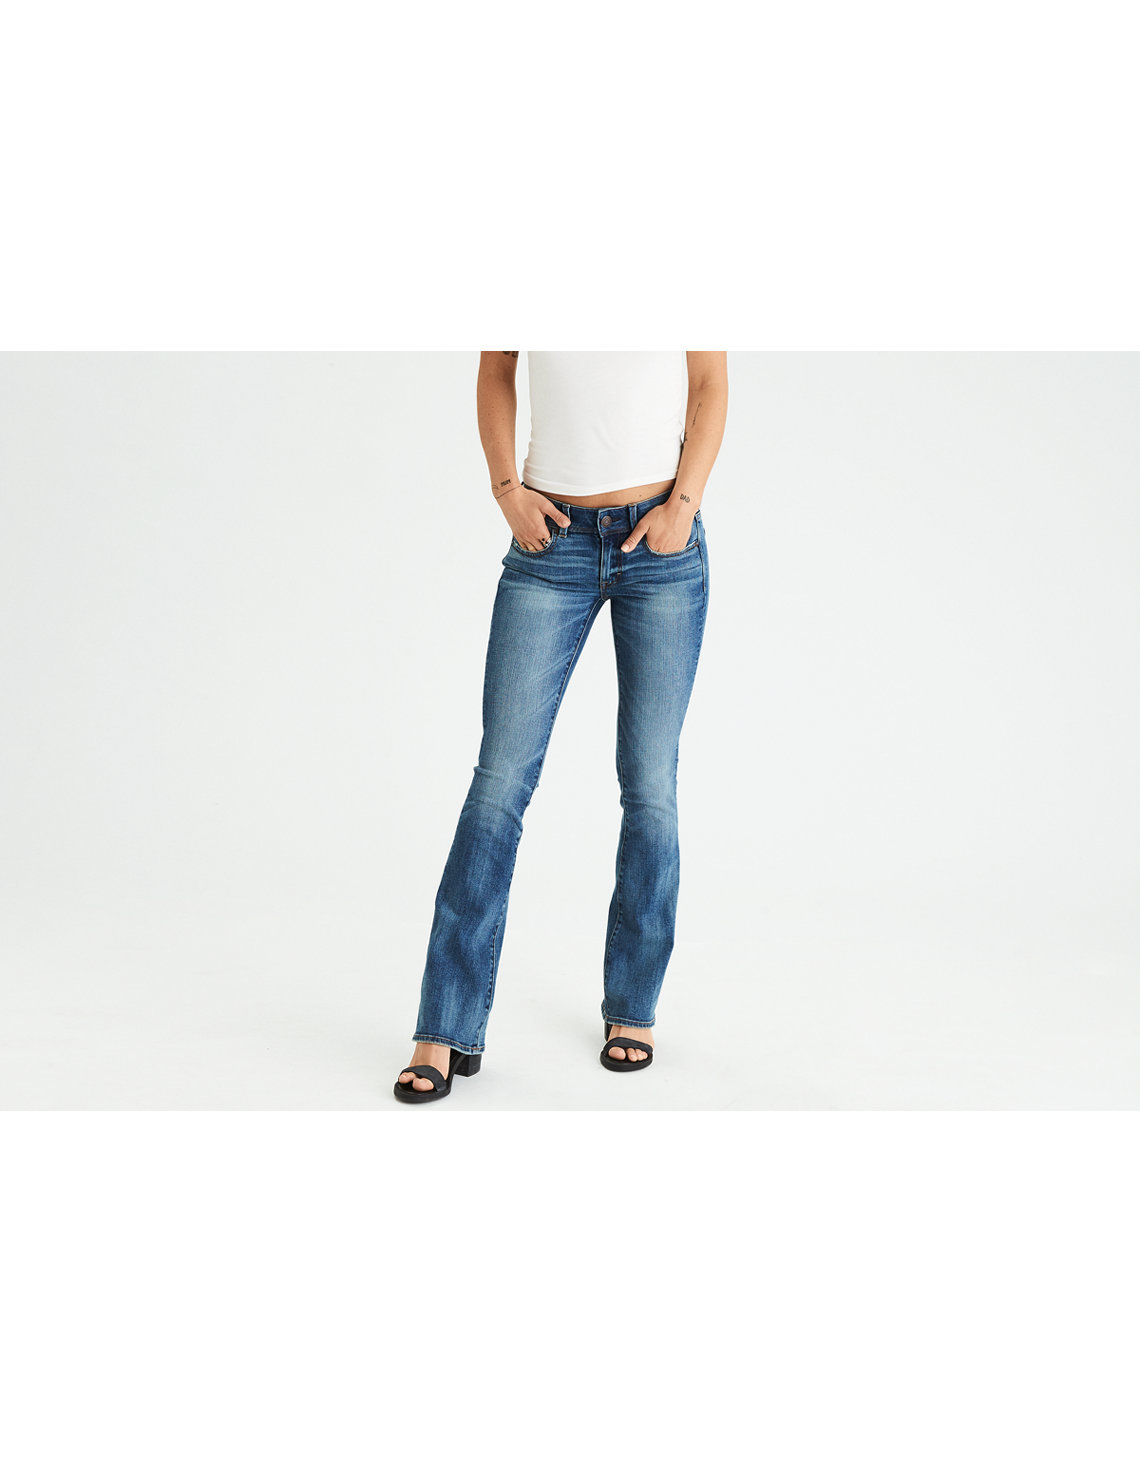 American eagle long skinny jeans